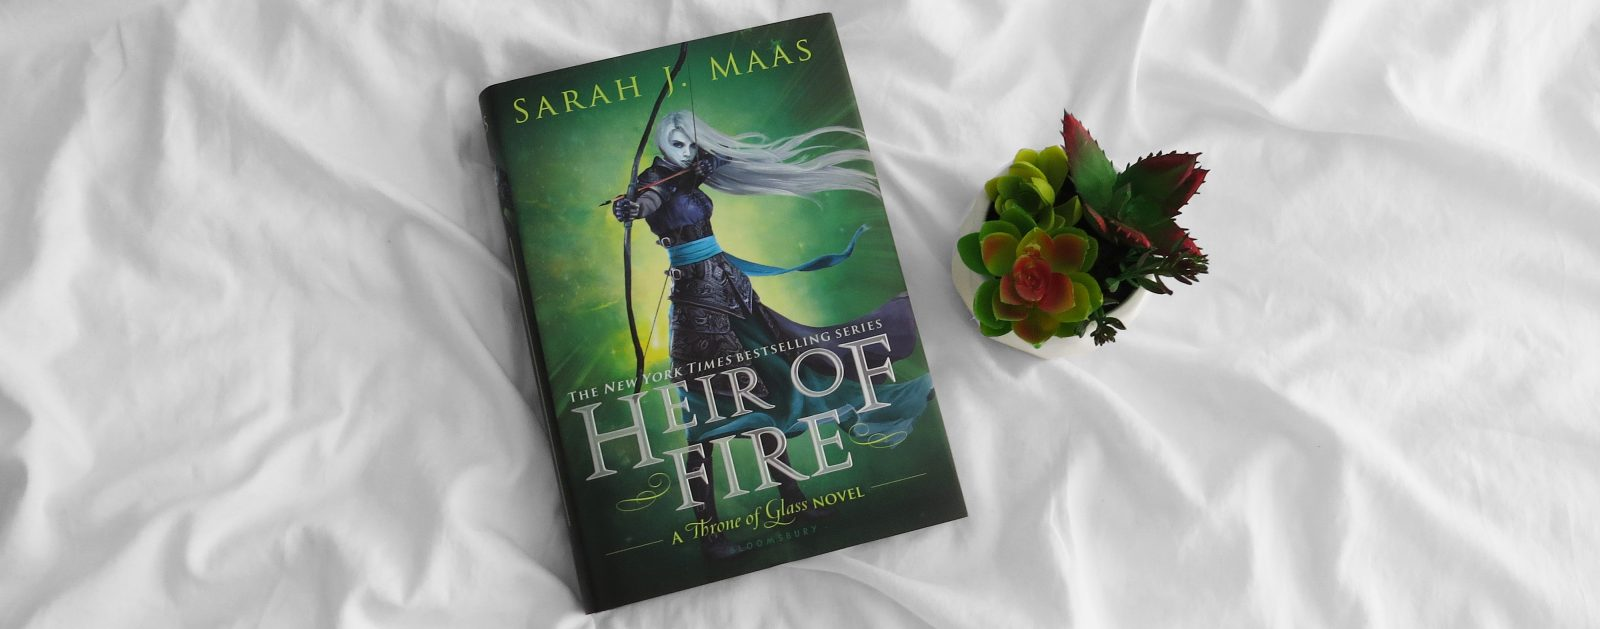 Review | Heir of Fire by Sarah J. Maas